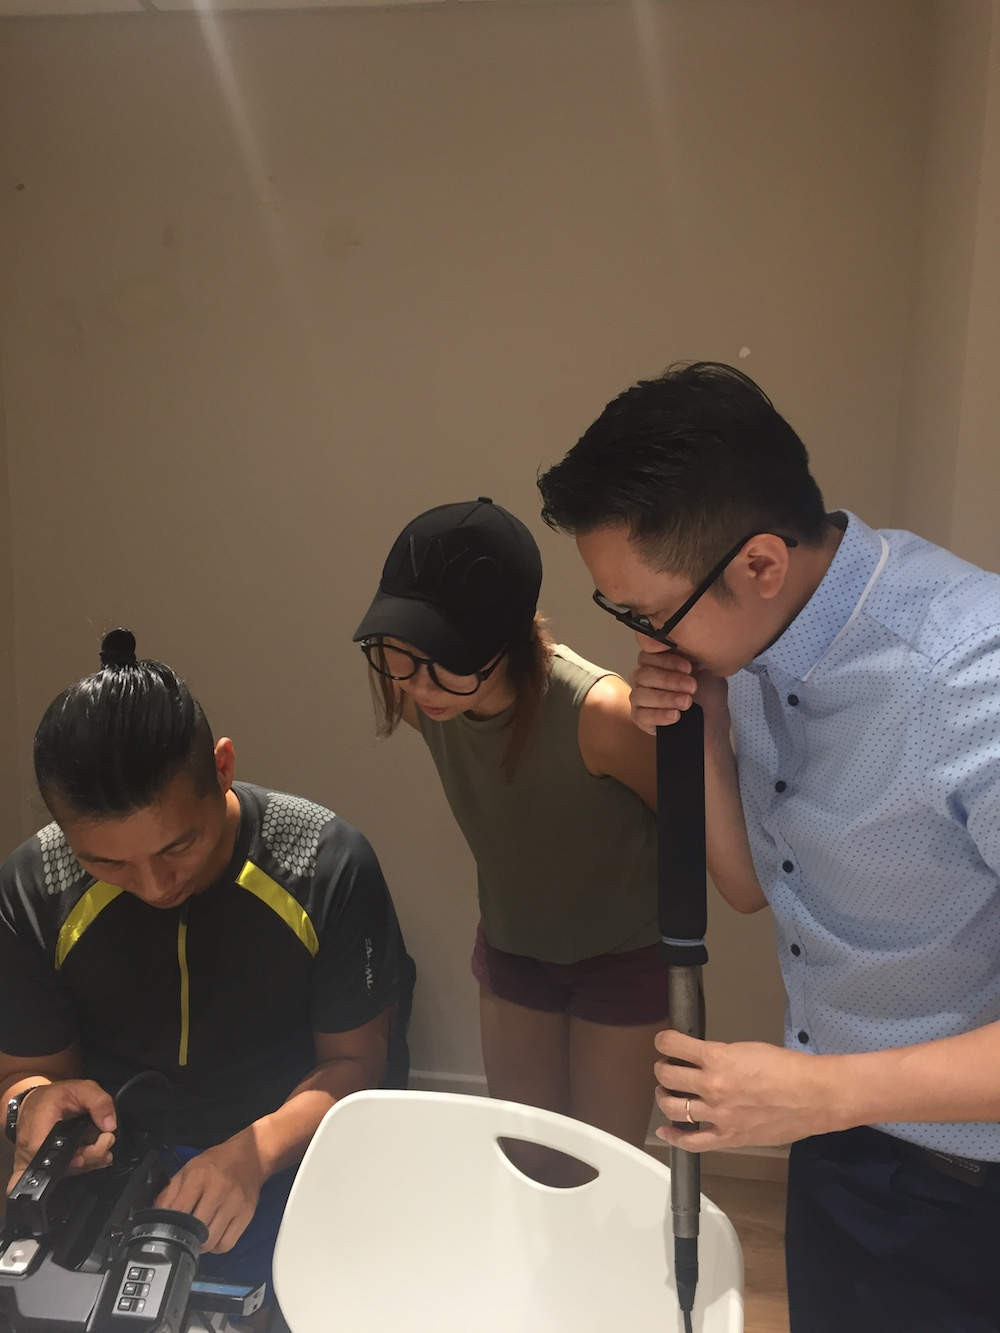 Wee Han (Technical Consultant), Charmaine (Producer), Jian Hui (Director of Photography) tinkering with the Ursa Mini Pro.